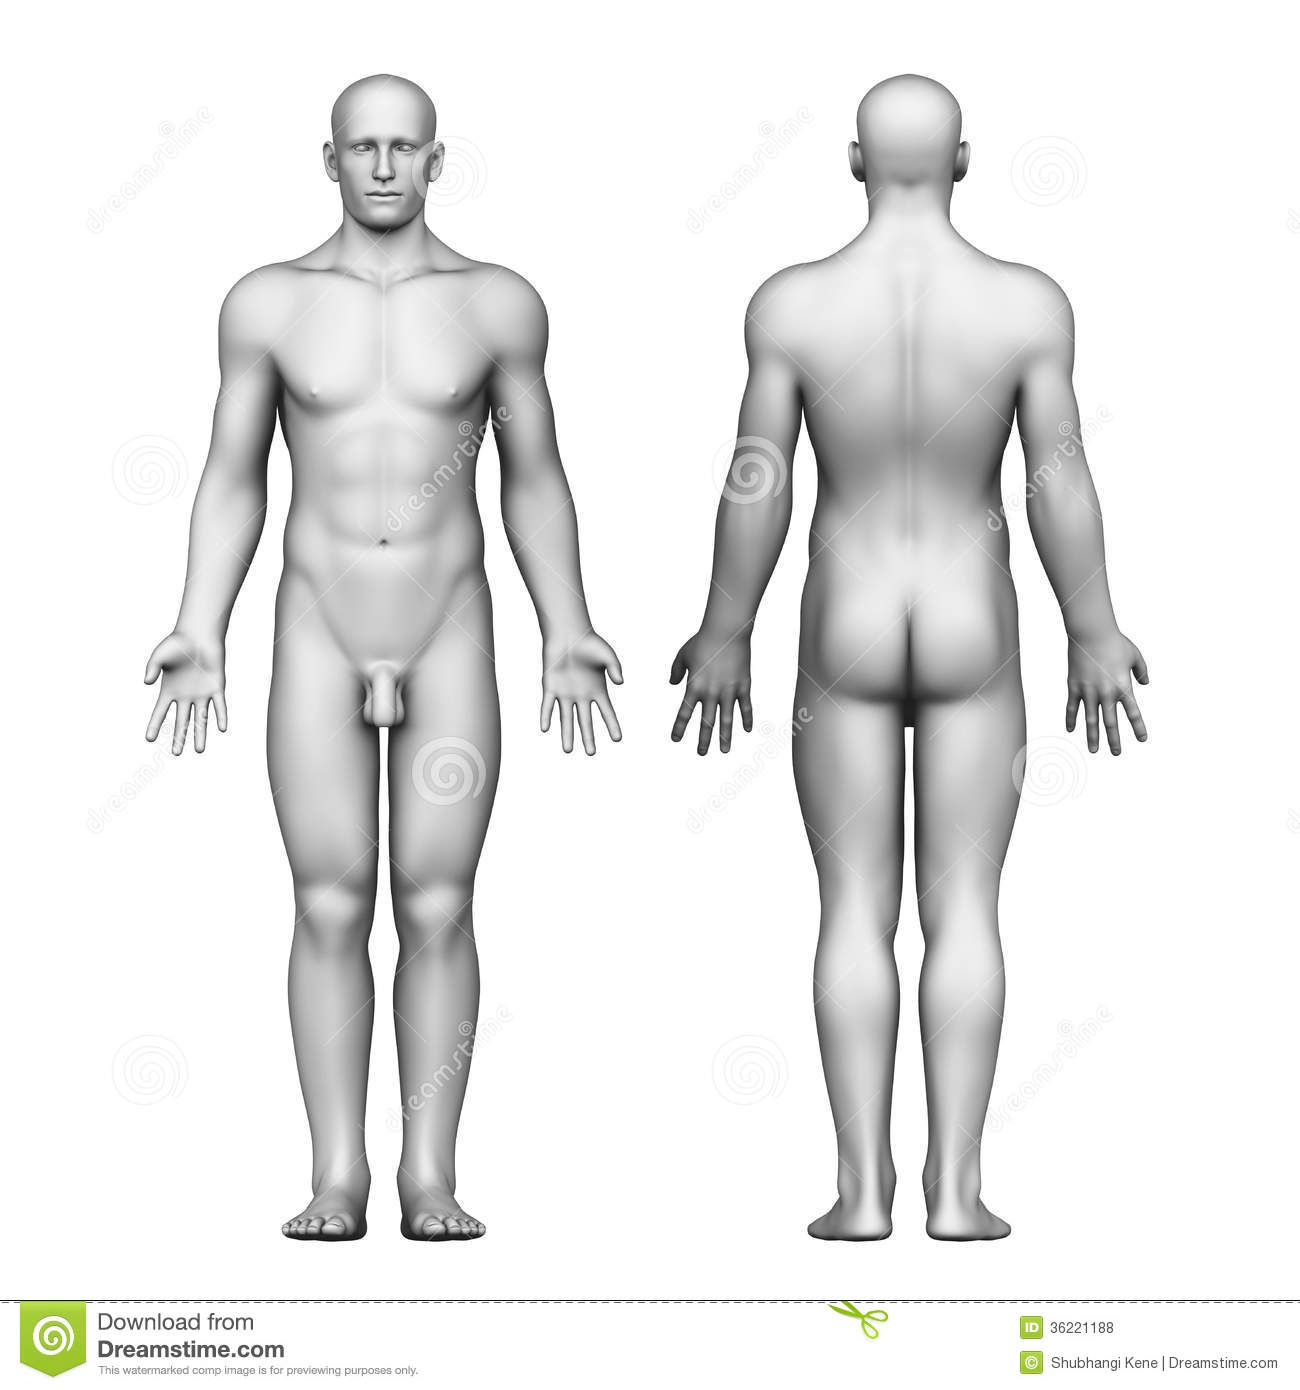 Nude male medical illustration gay the 5